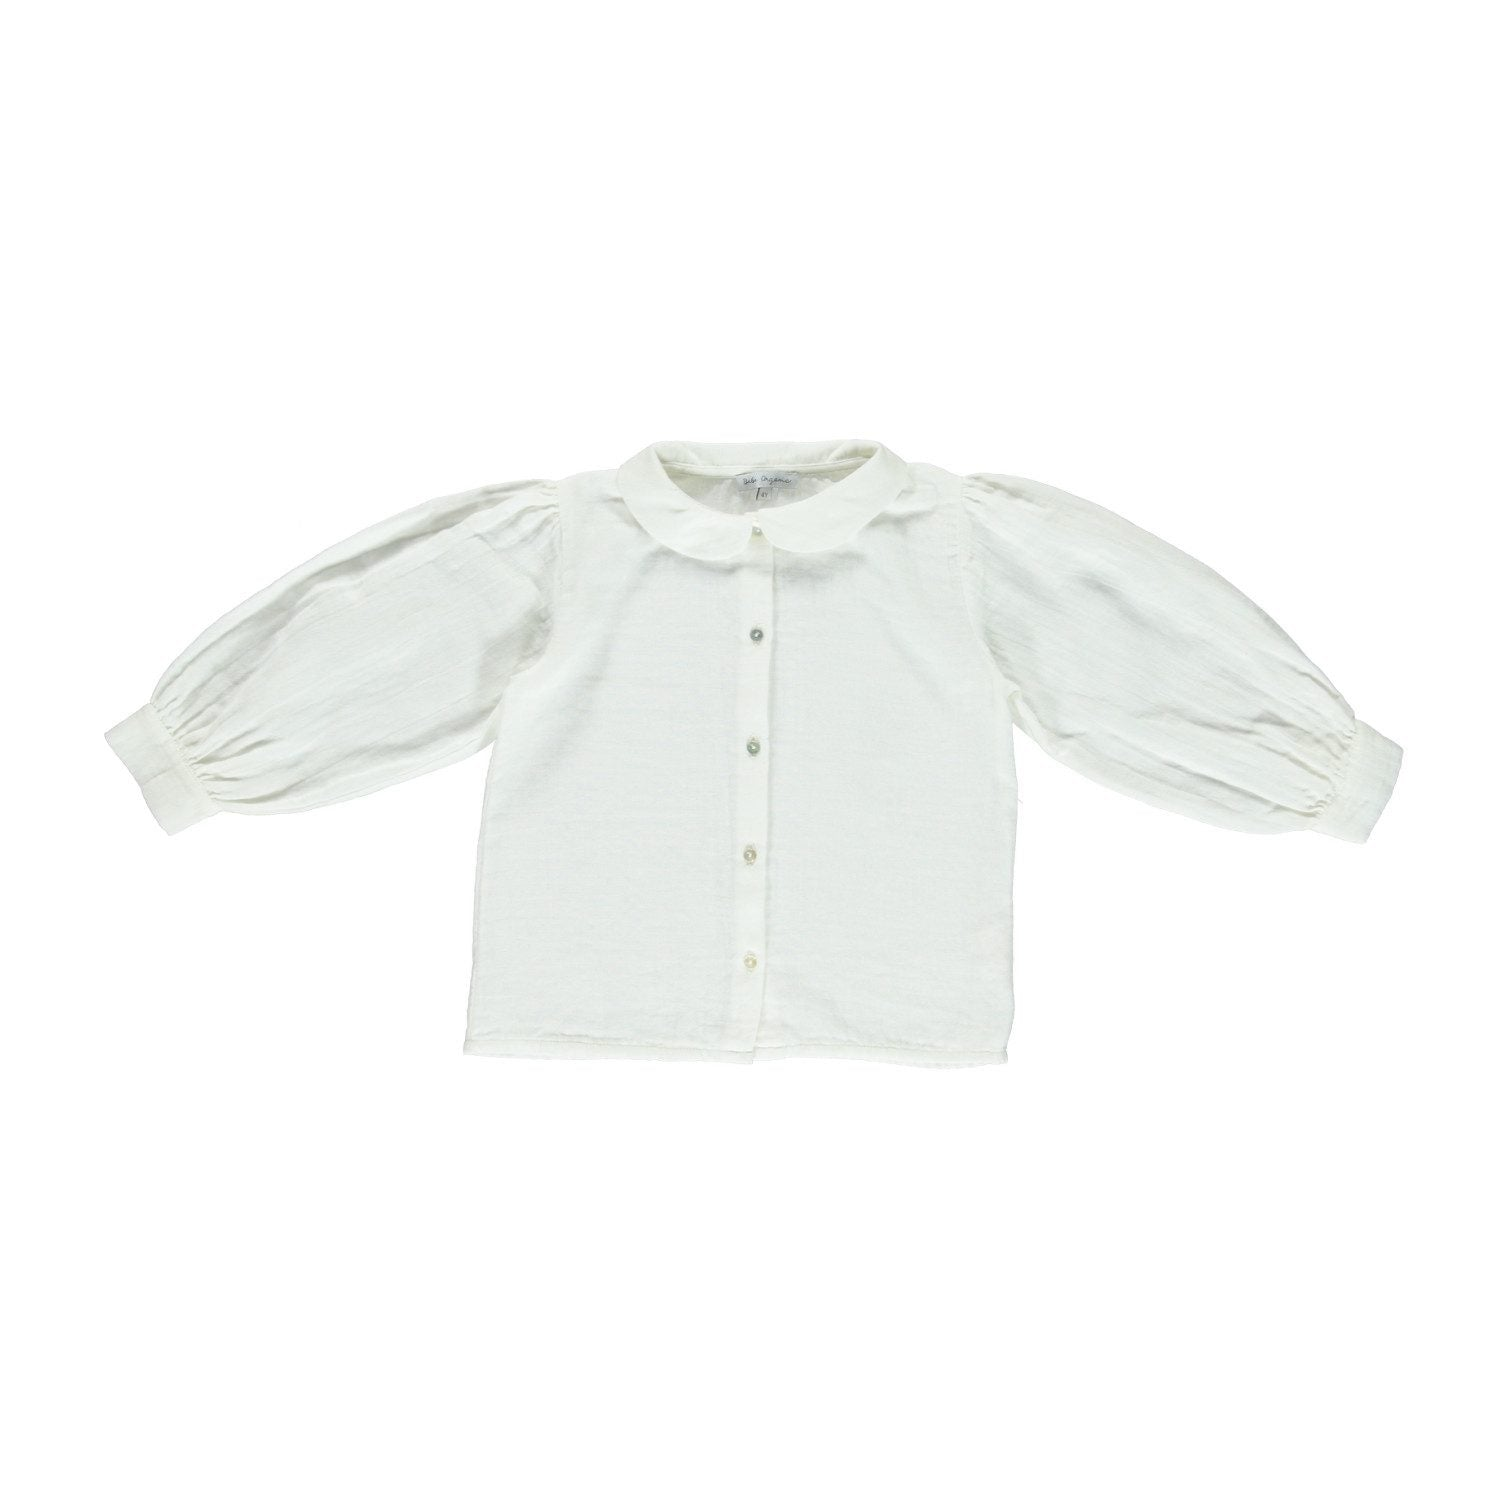 ORGANIC LESLIE BLOUSE, NATURAL WHITE | BEBE ORGANIC - Spinel Boutique